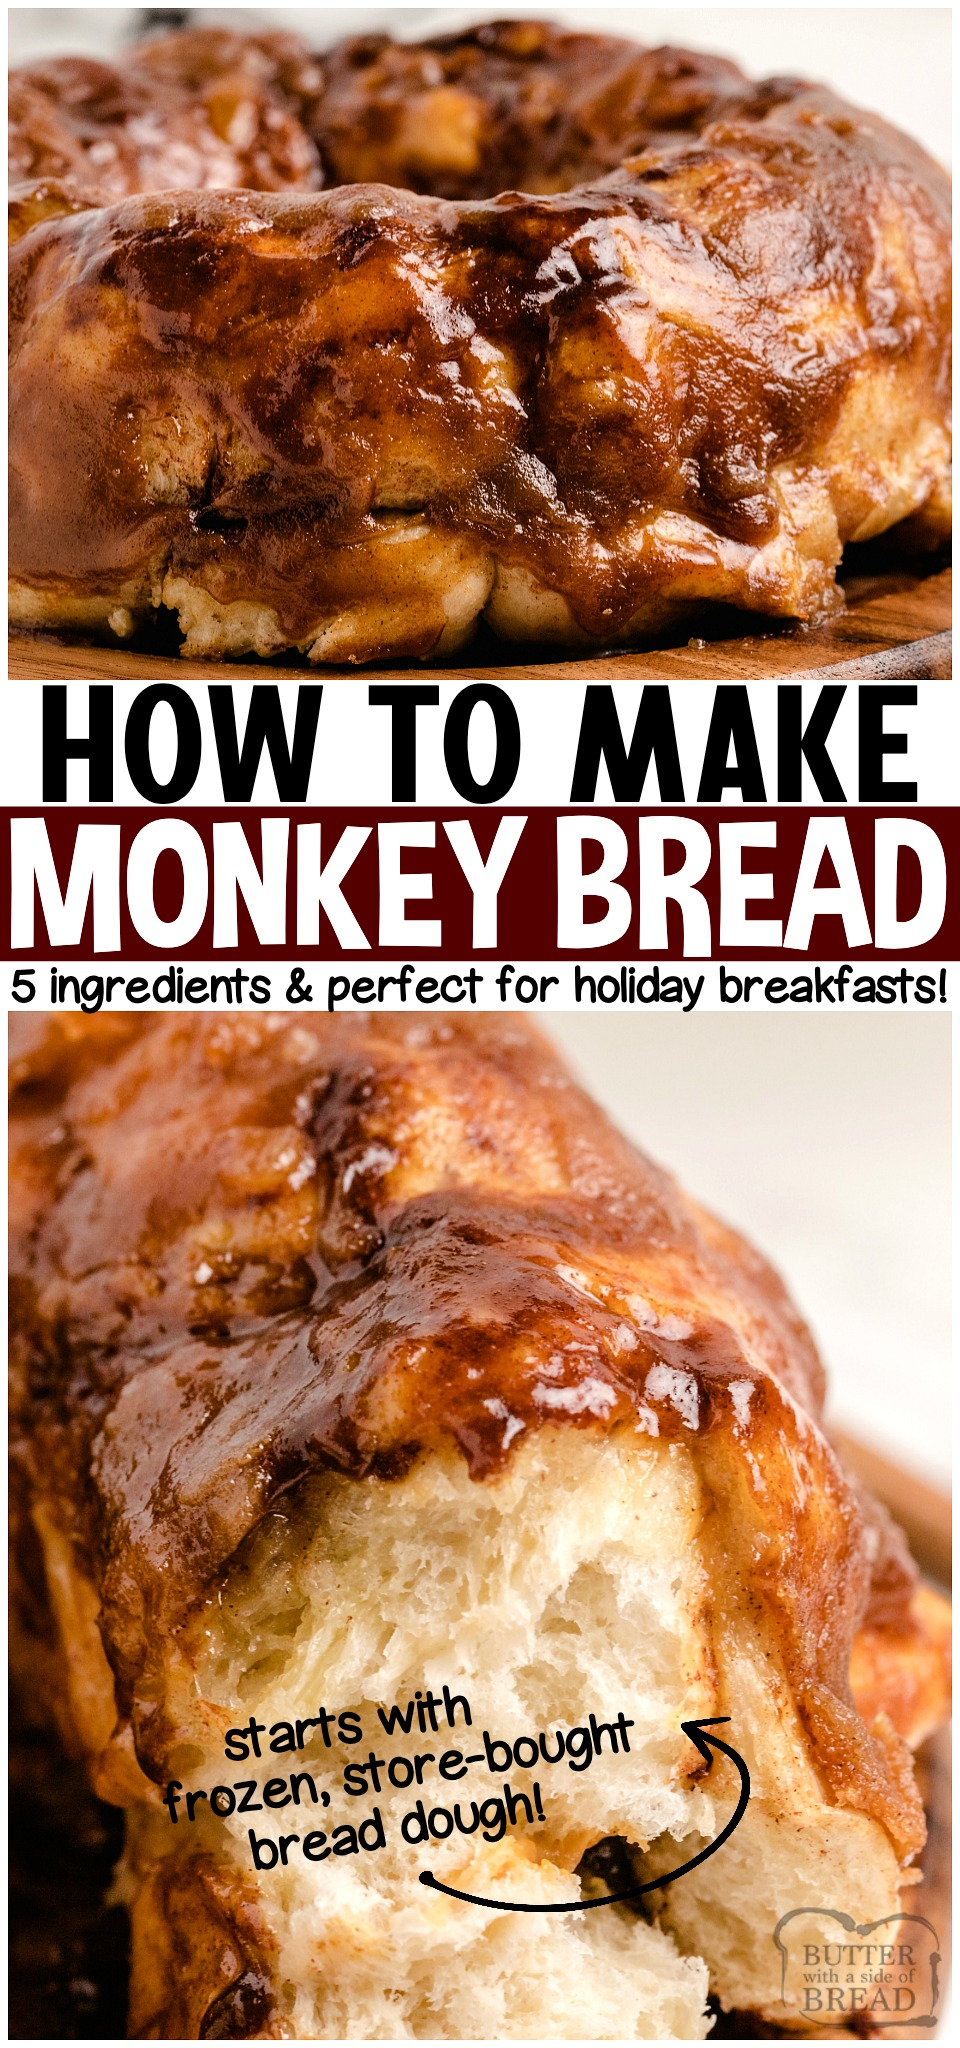 Monkey Bread is warm, gooey sweet cinnamon breakfast rolls made with brown sugar, butterscotch pudding, butter and frozen rolls. Learning How to make Monkey Bread is easy- and it can be done the night before! #rolls #monkeybread #cinnamon #sweetrolls #breakfast #recipe from BUTTER WITH A SIDE OF BREAD